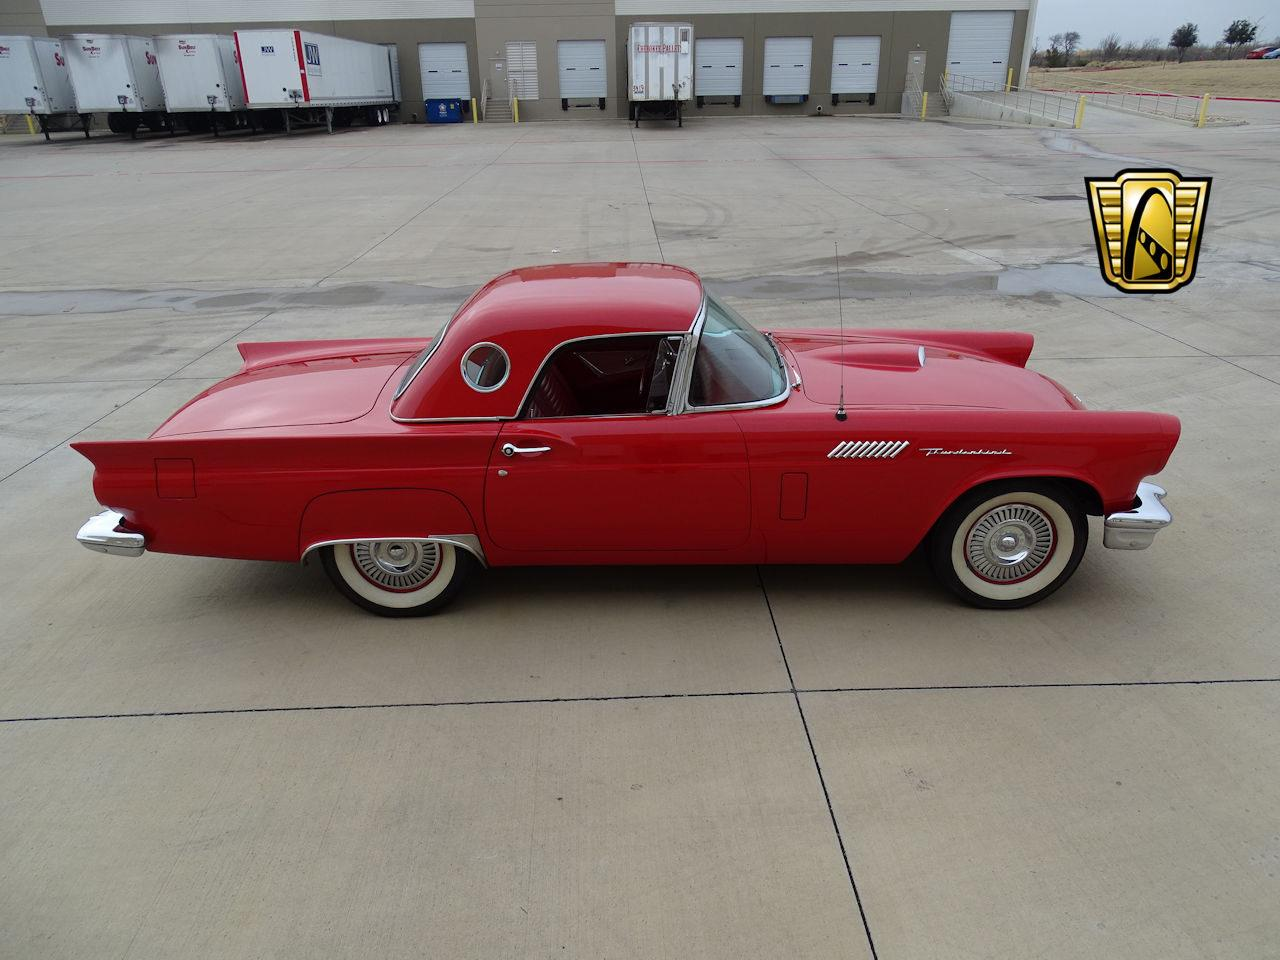 Large Picture of Classic 1957 Ford Thunderbird located in Texas - $35,995.00 Offered by Gateway Classic Cars - Dallas - MZF2